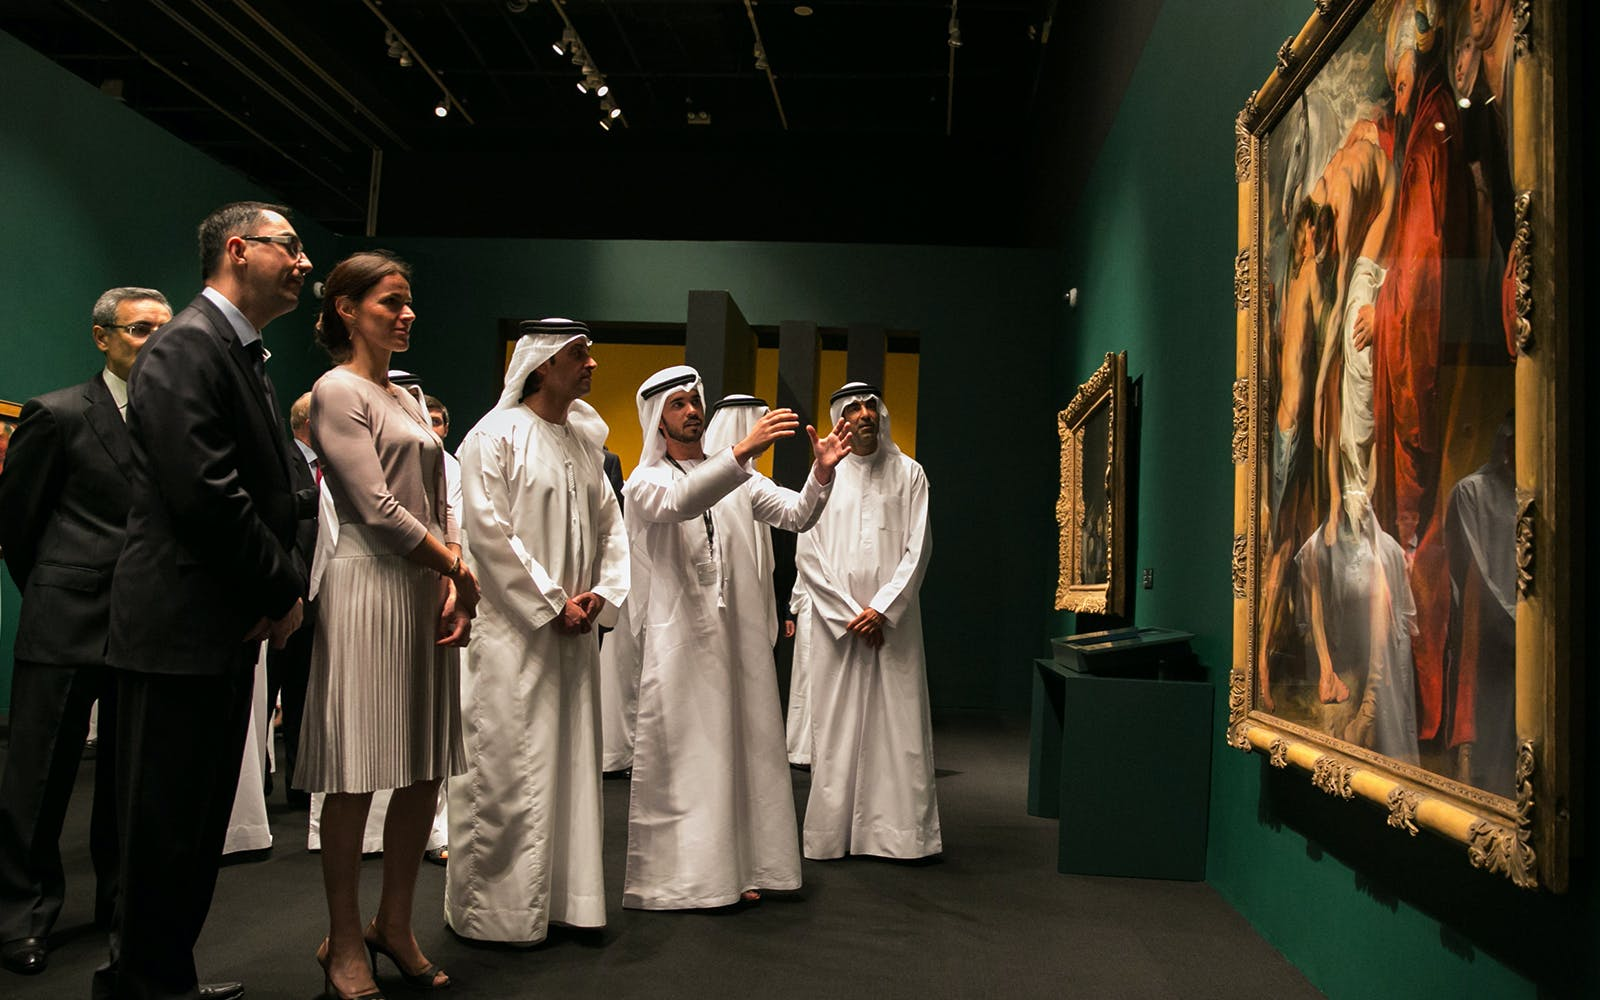 official guided tour of louvre abu dhabi-5